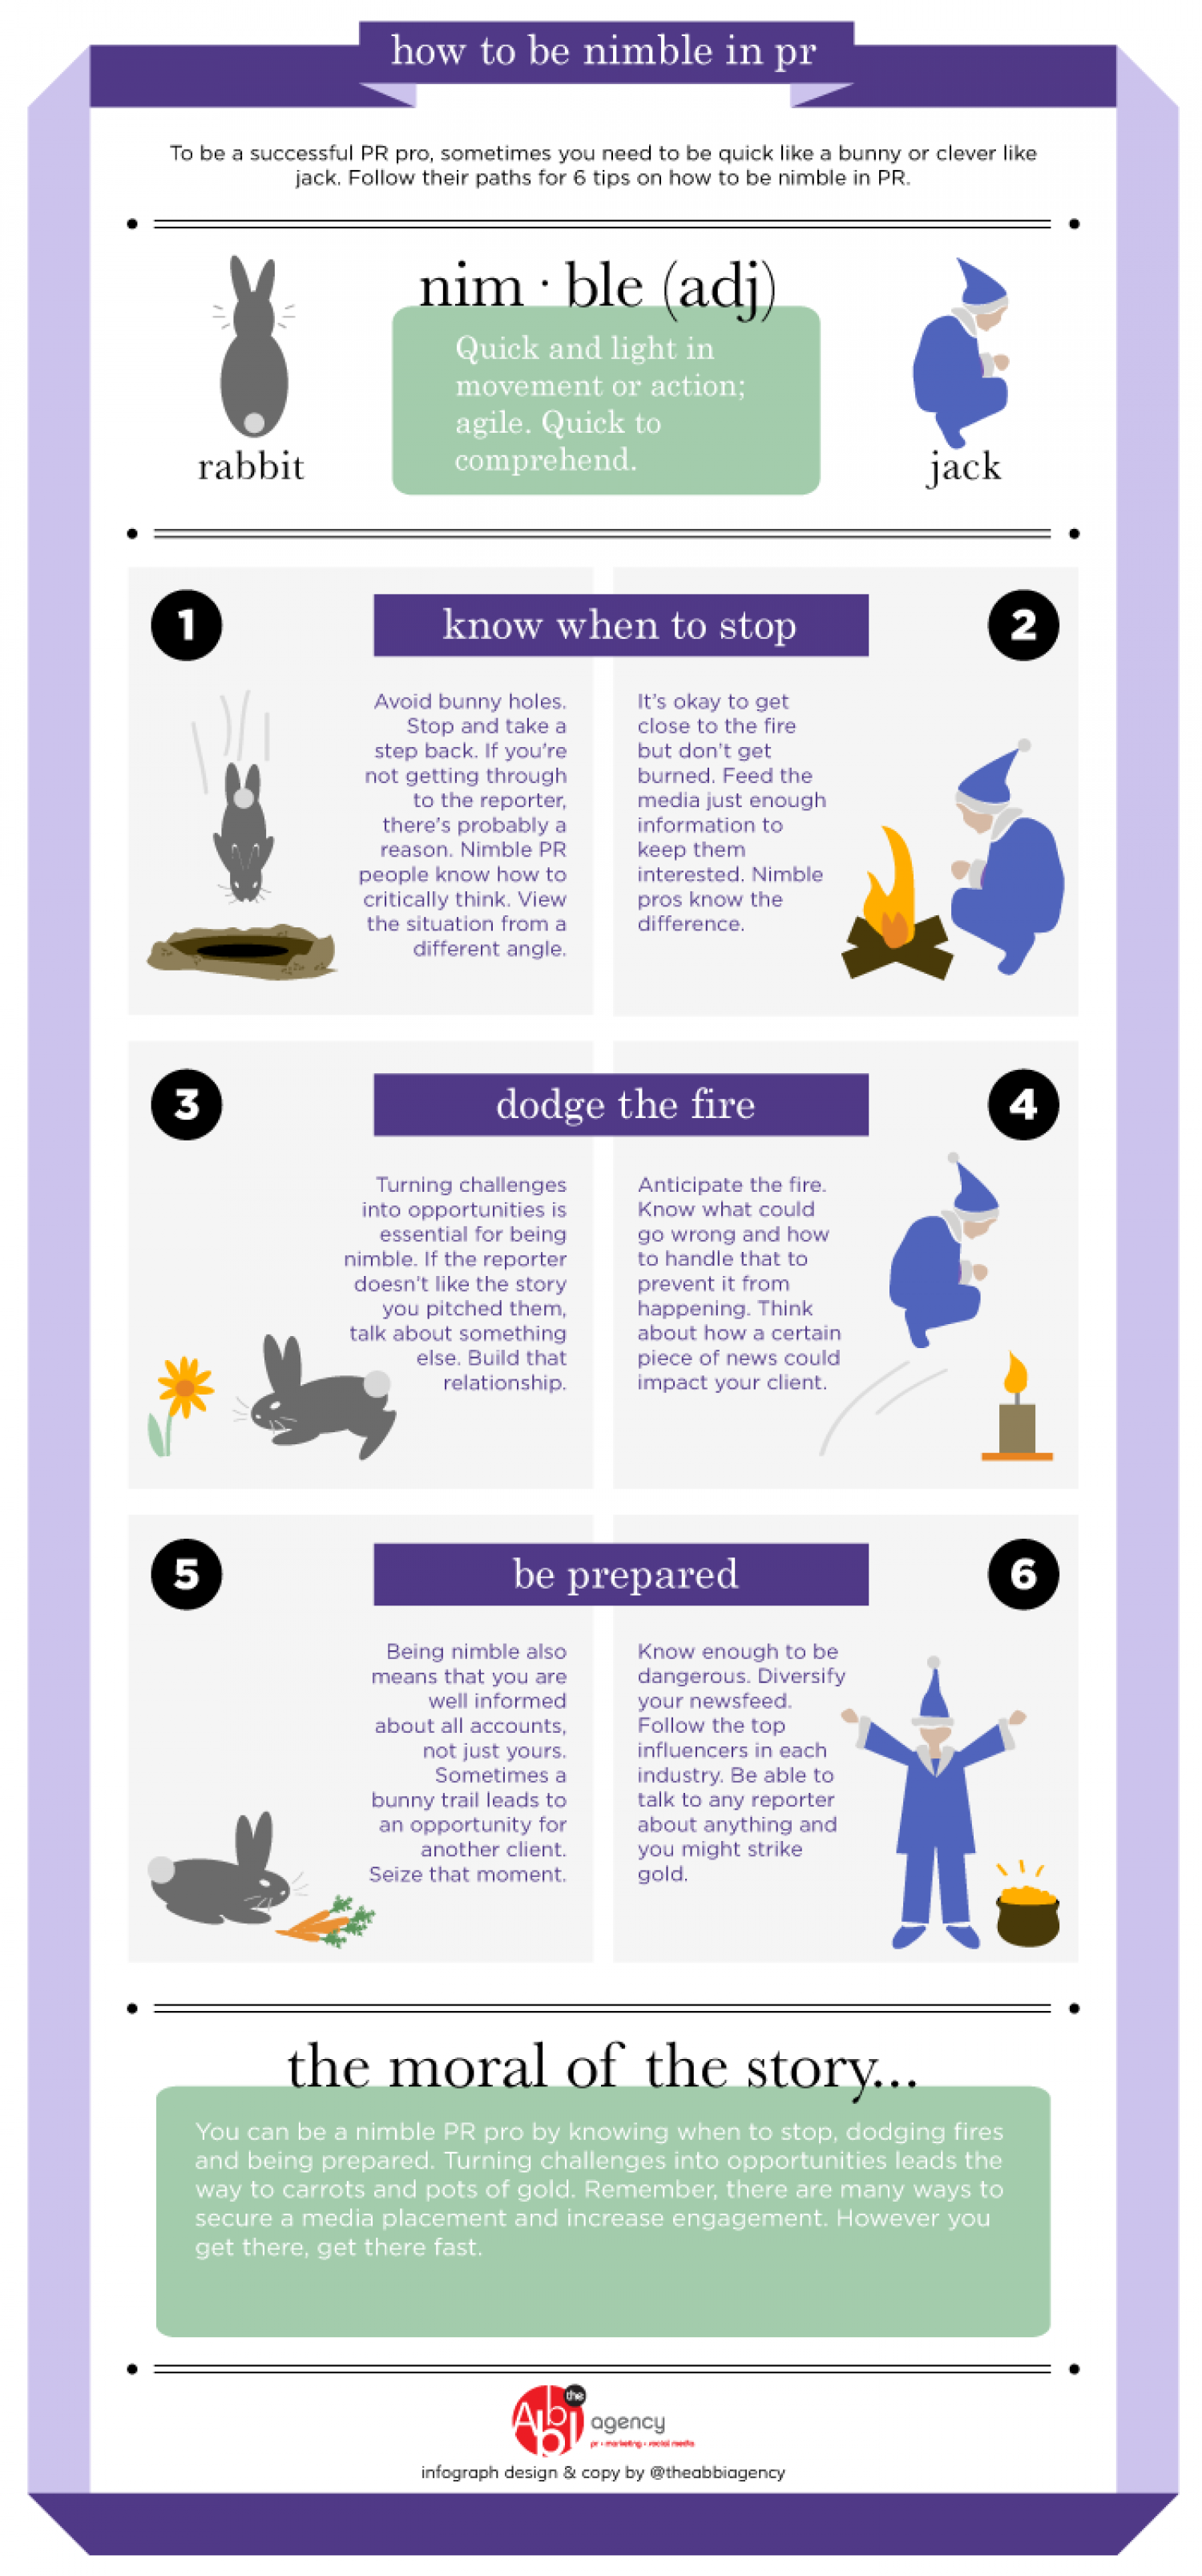 How to be nimble in PR Infographic